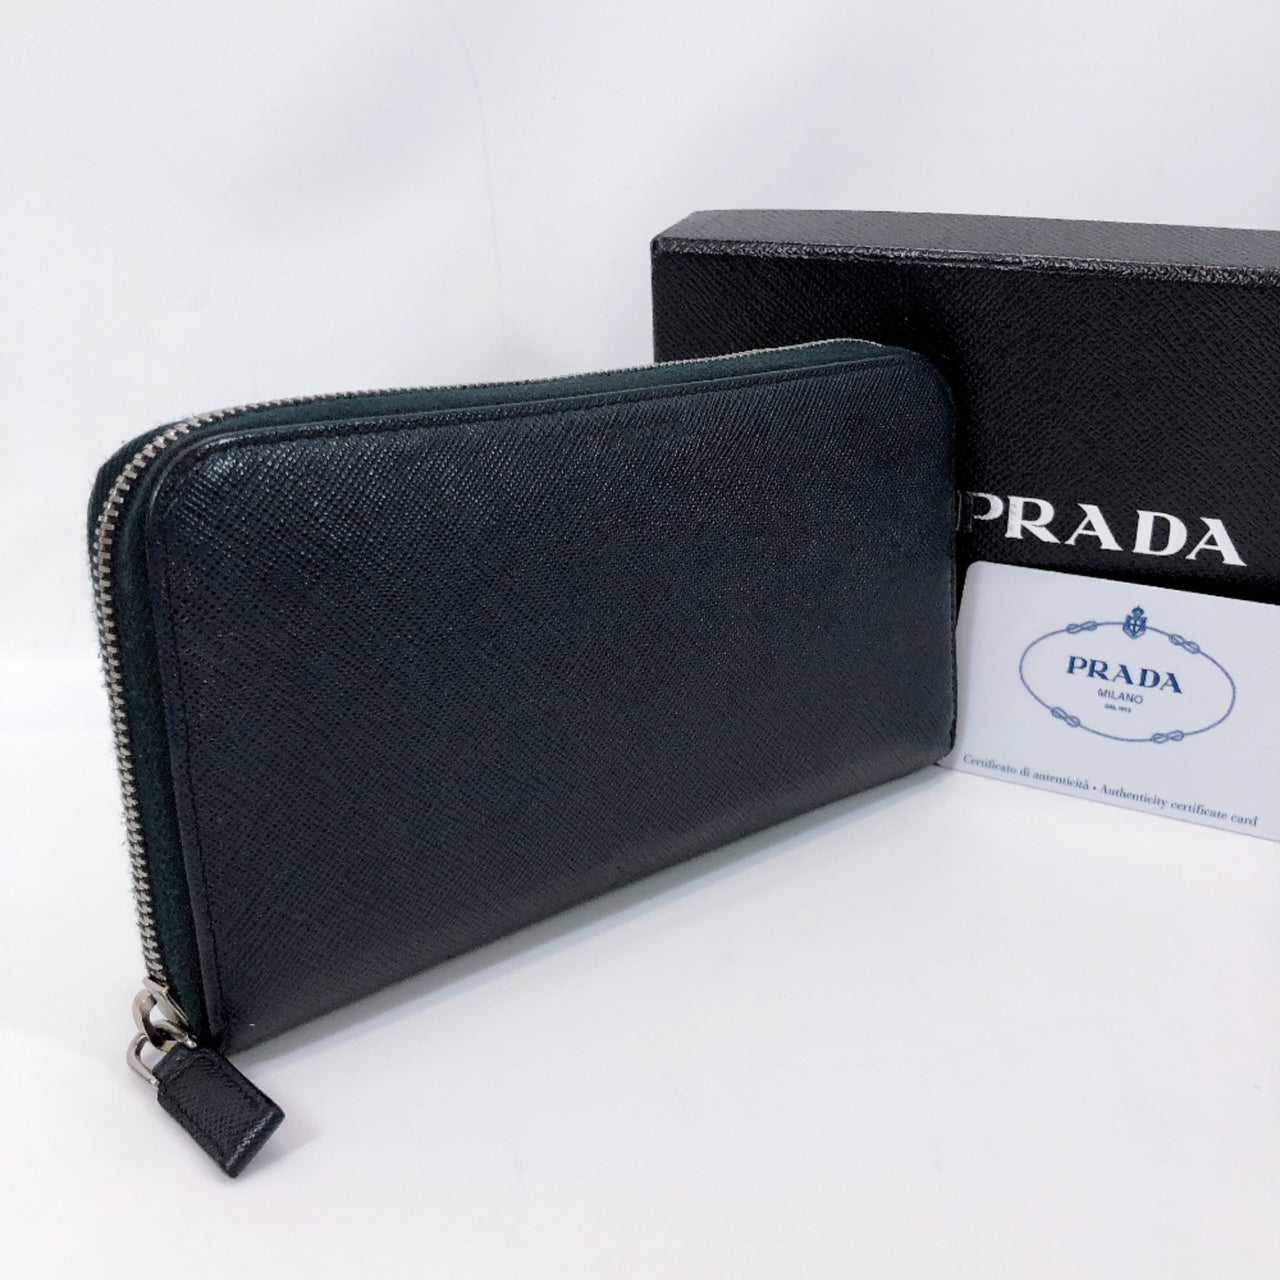 PRADA purse 2ML317 Round zip Safiano leather Navy mens Used